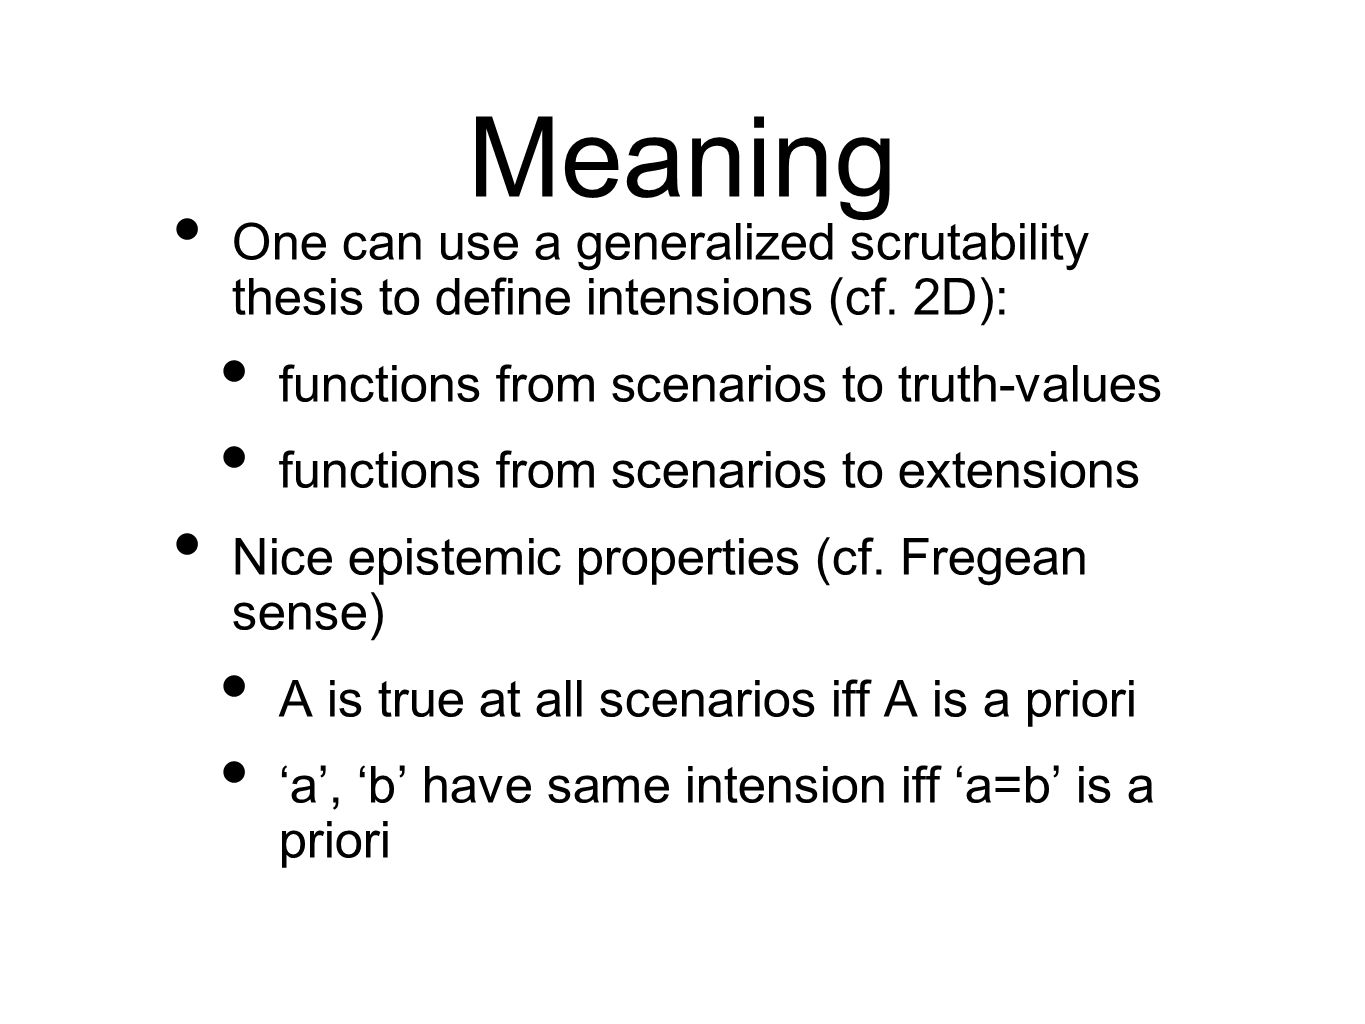 Meaning One can use a generalized scrutability thesis to define intensions (cf. 2D): functions from scenarios to truth-values.